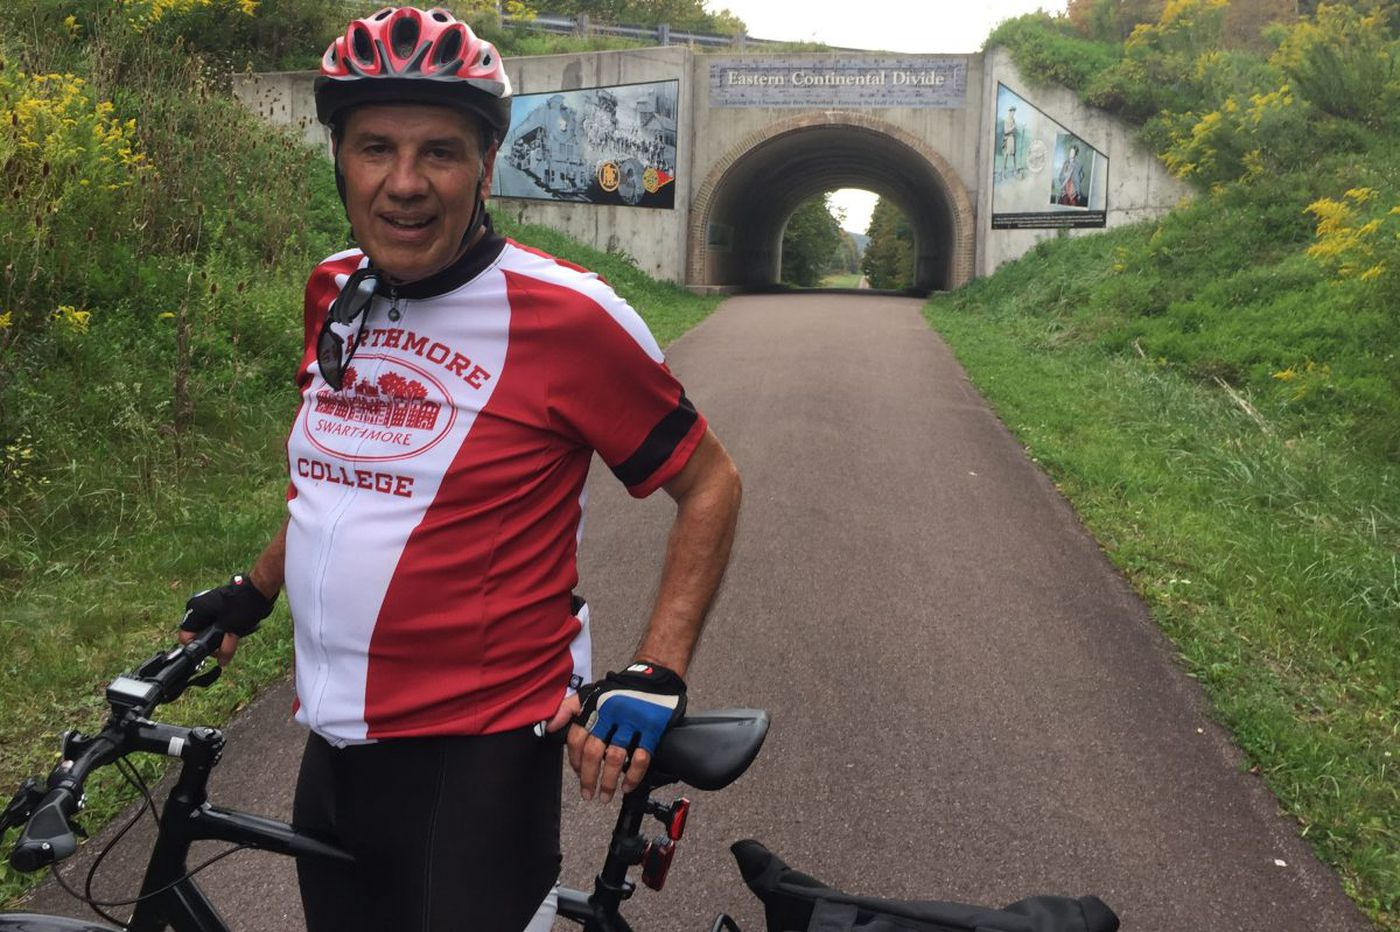 A great bike passage from Pittsburgh to Washington, D.C.